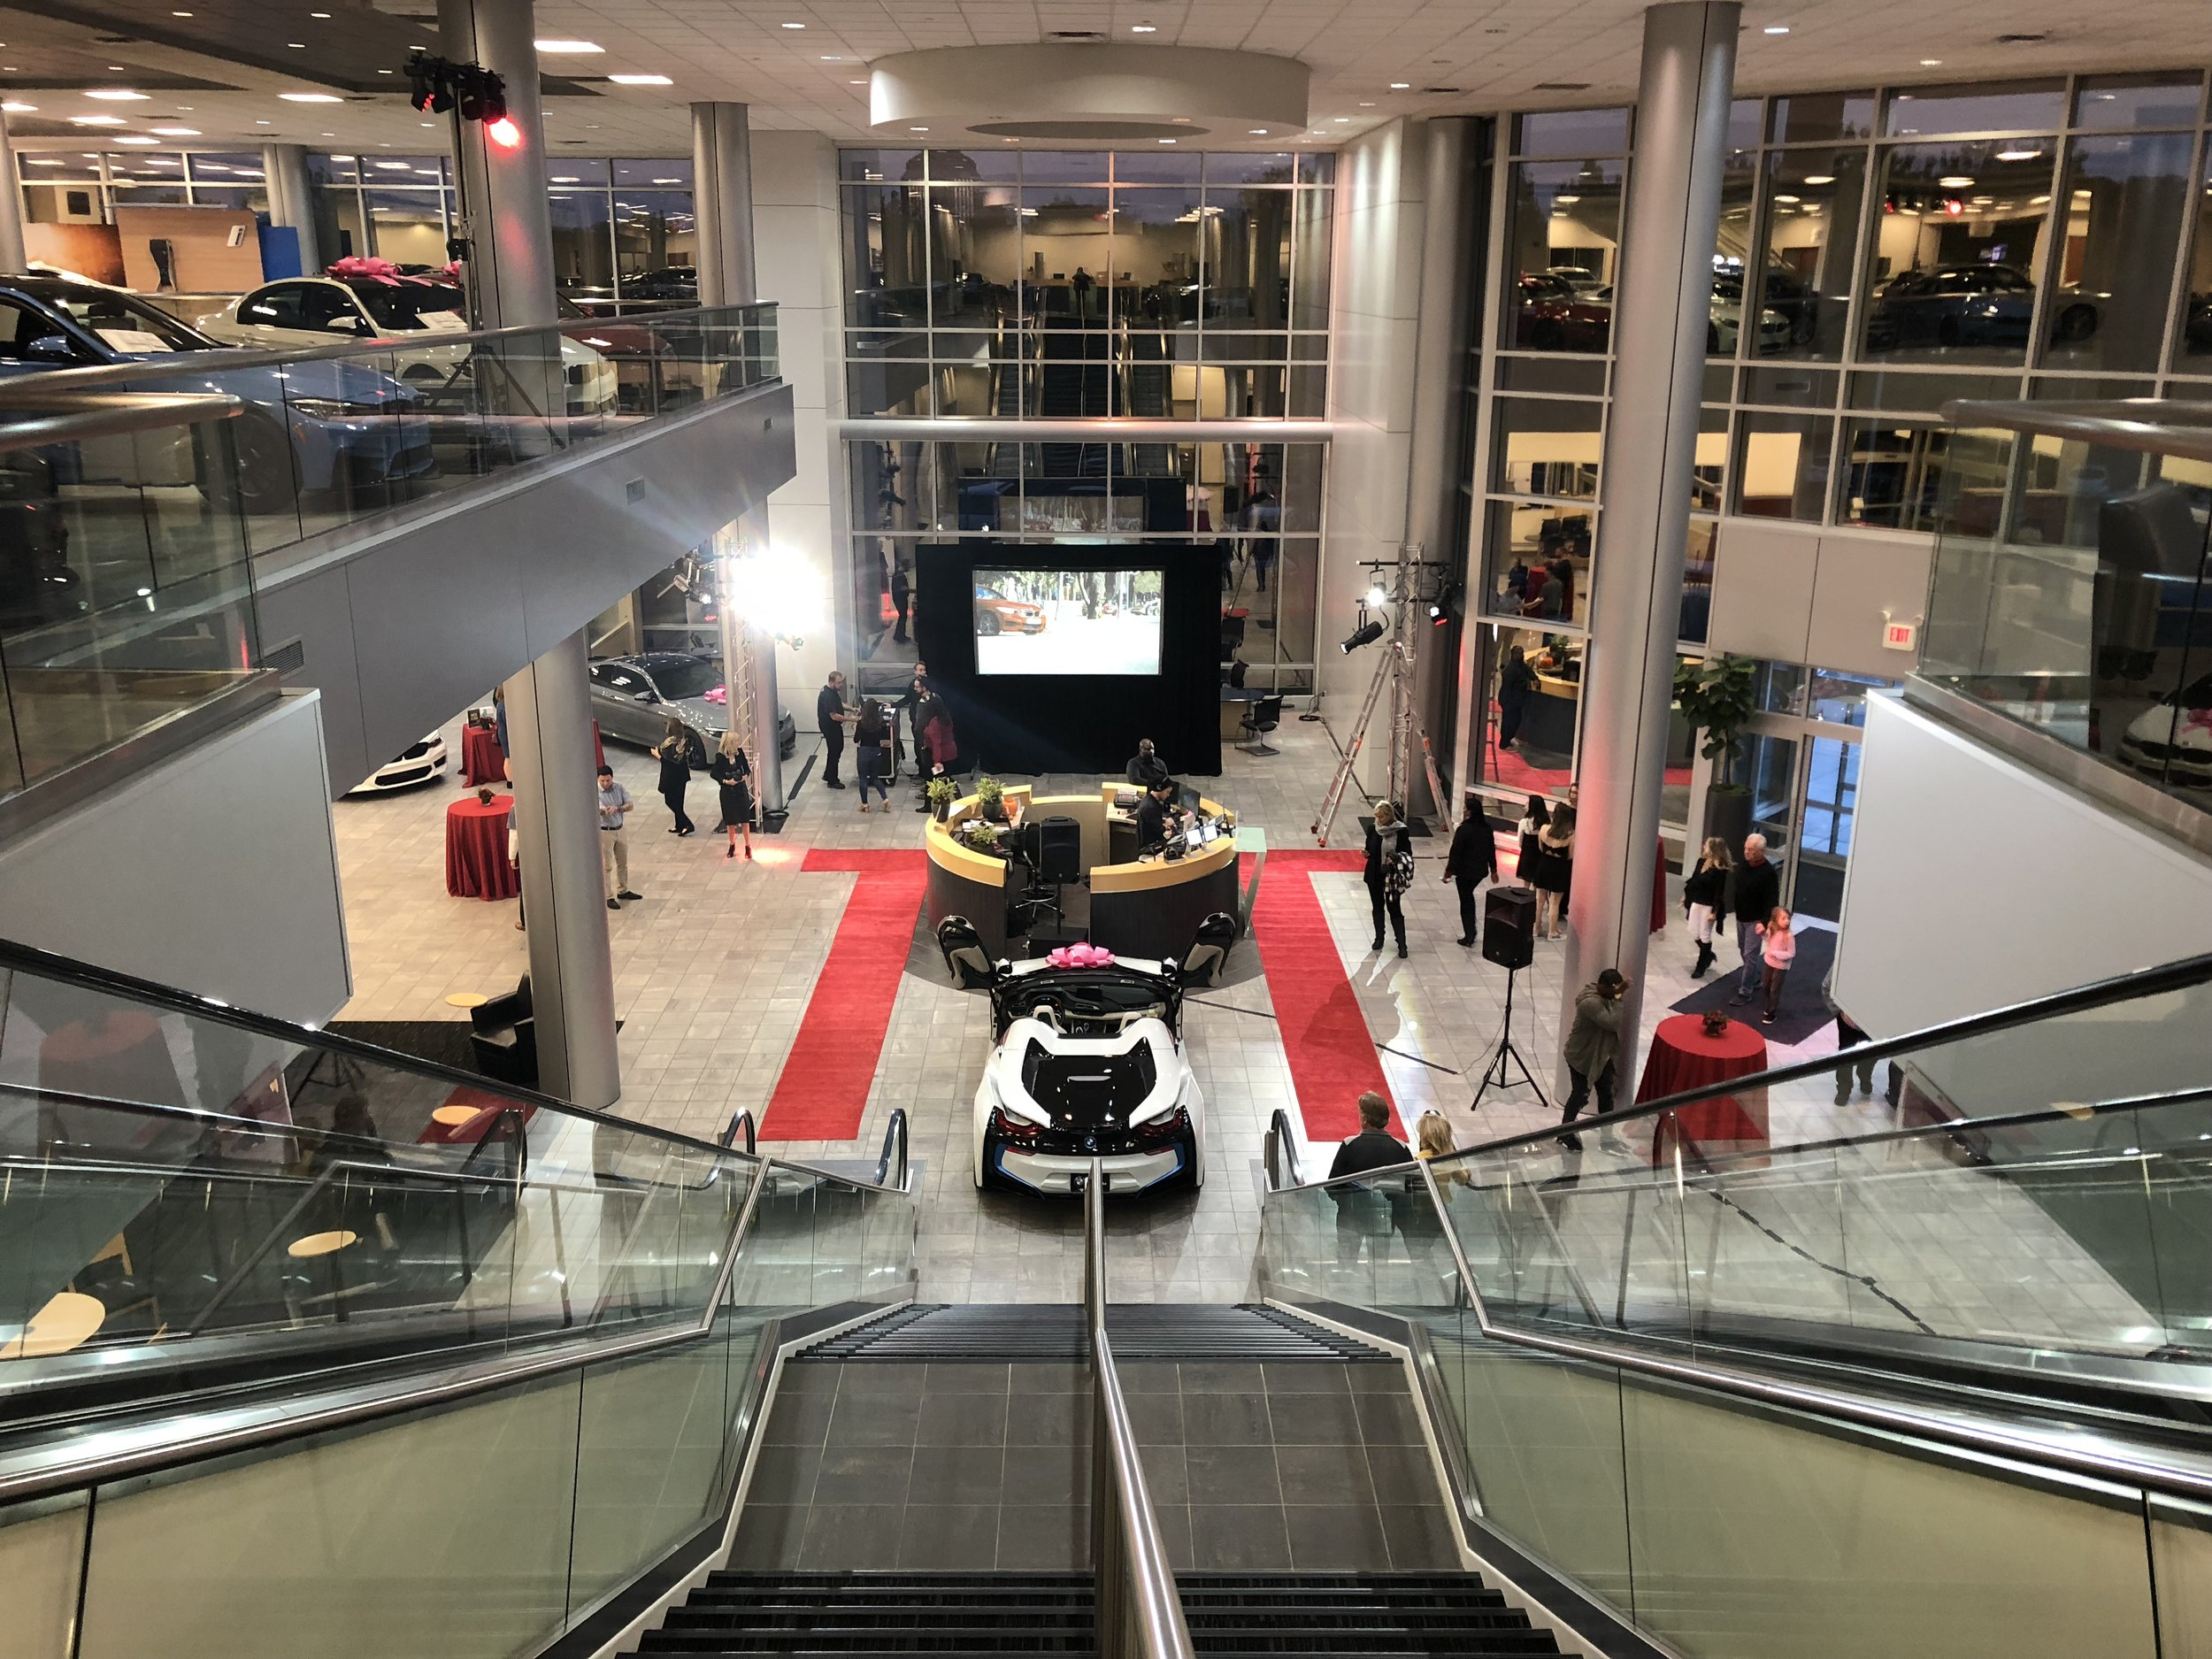 Red Hot Runway Fashion Show Event At Bmw Audio Visual Equipment Rental Company Minneapolis Mn